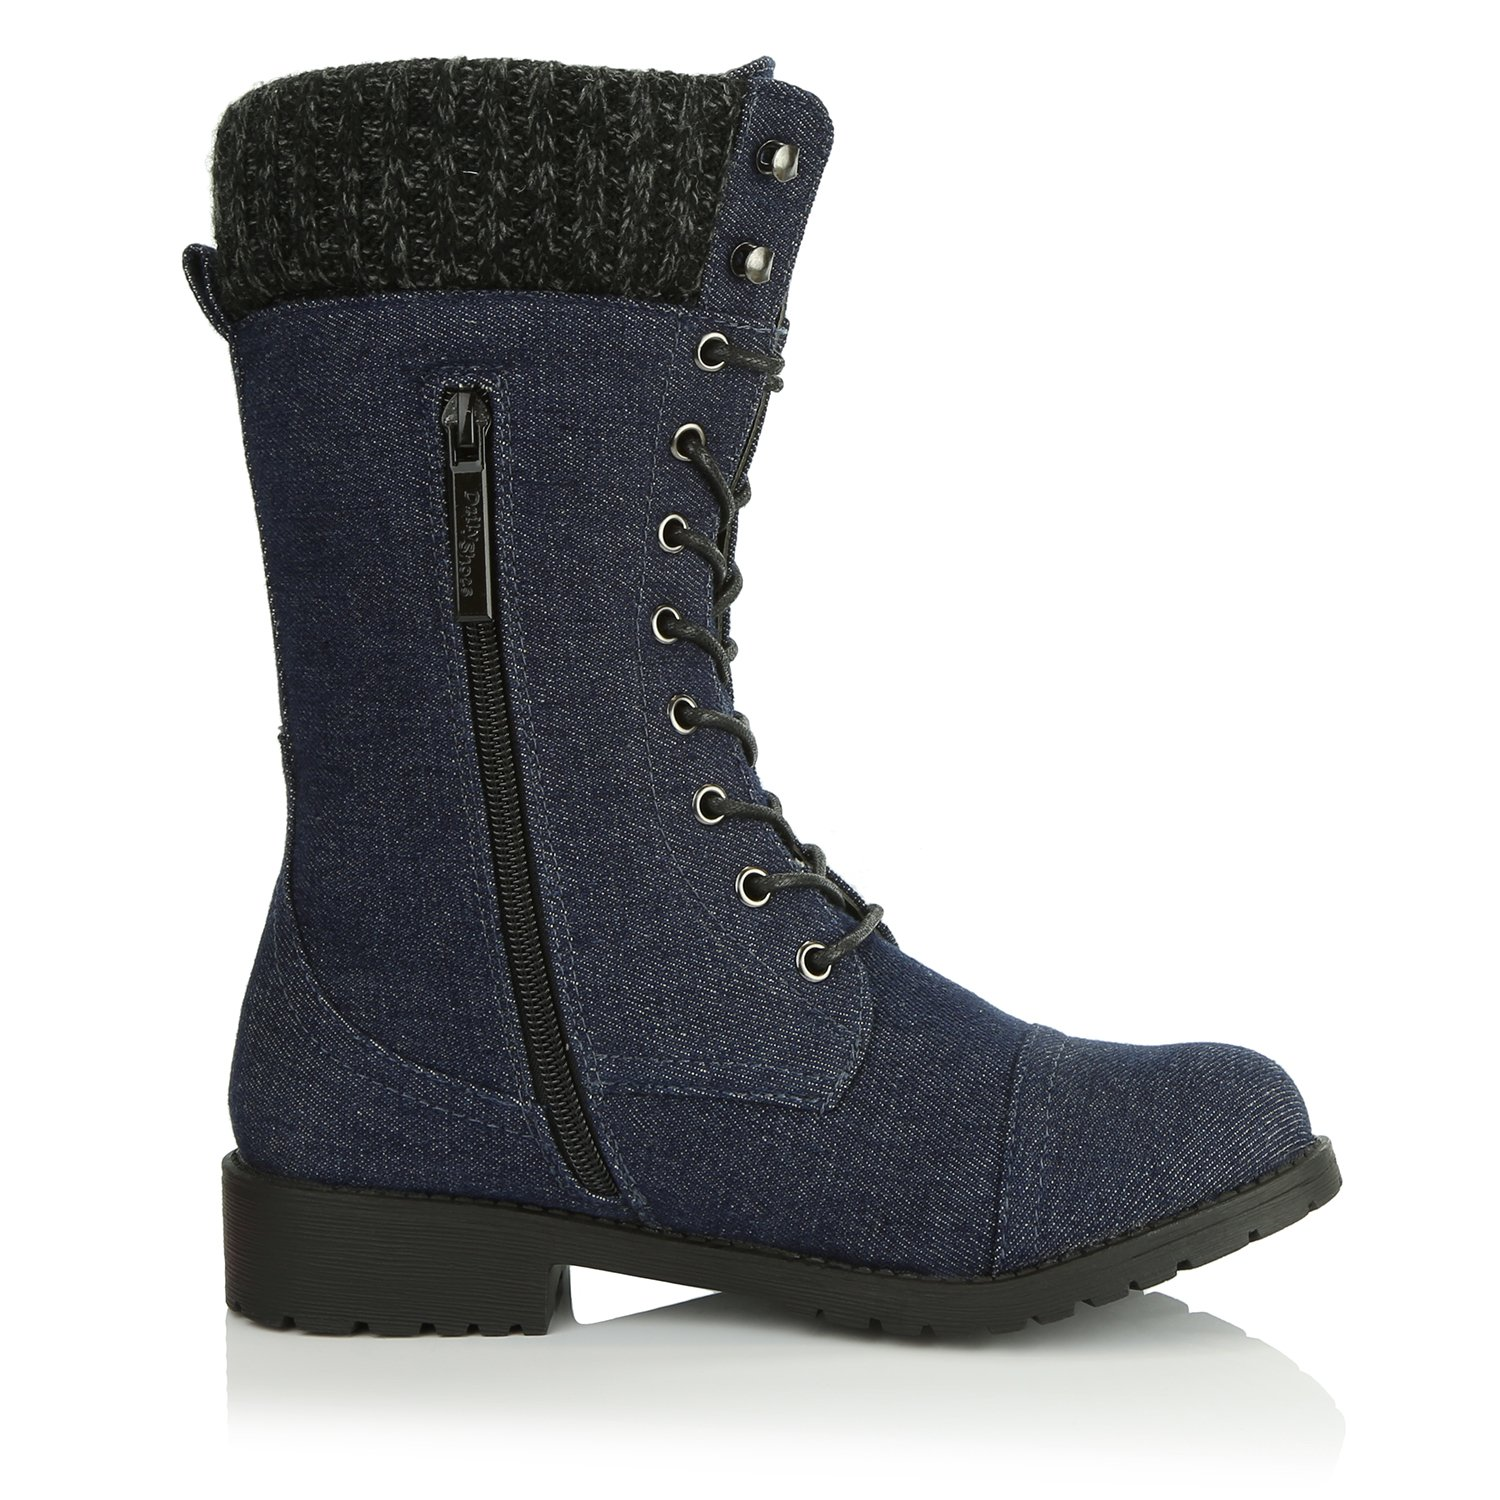 DailyShoes Ankle Women's Combat Style up Ankle DailyShoes Bootie Quilted Military Knit Credit Card Knife Money Wallet Pocket Boots B0155NA0D8 7.5 B(M) US|Blue Denim 03b79b